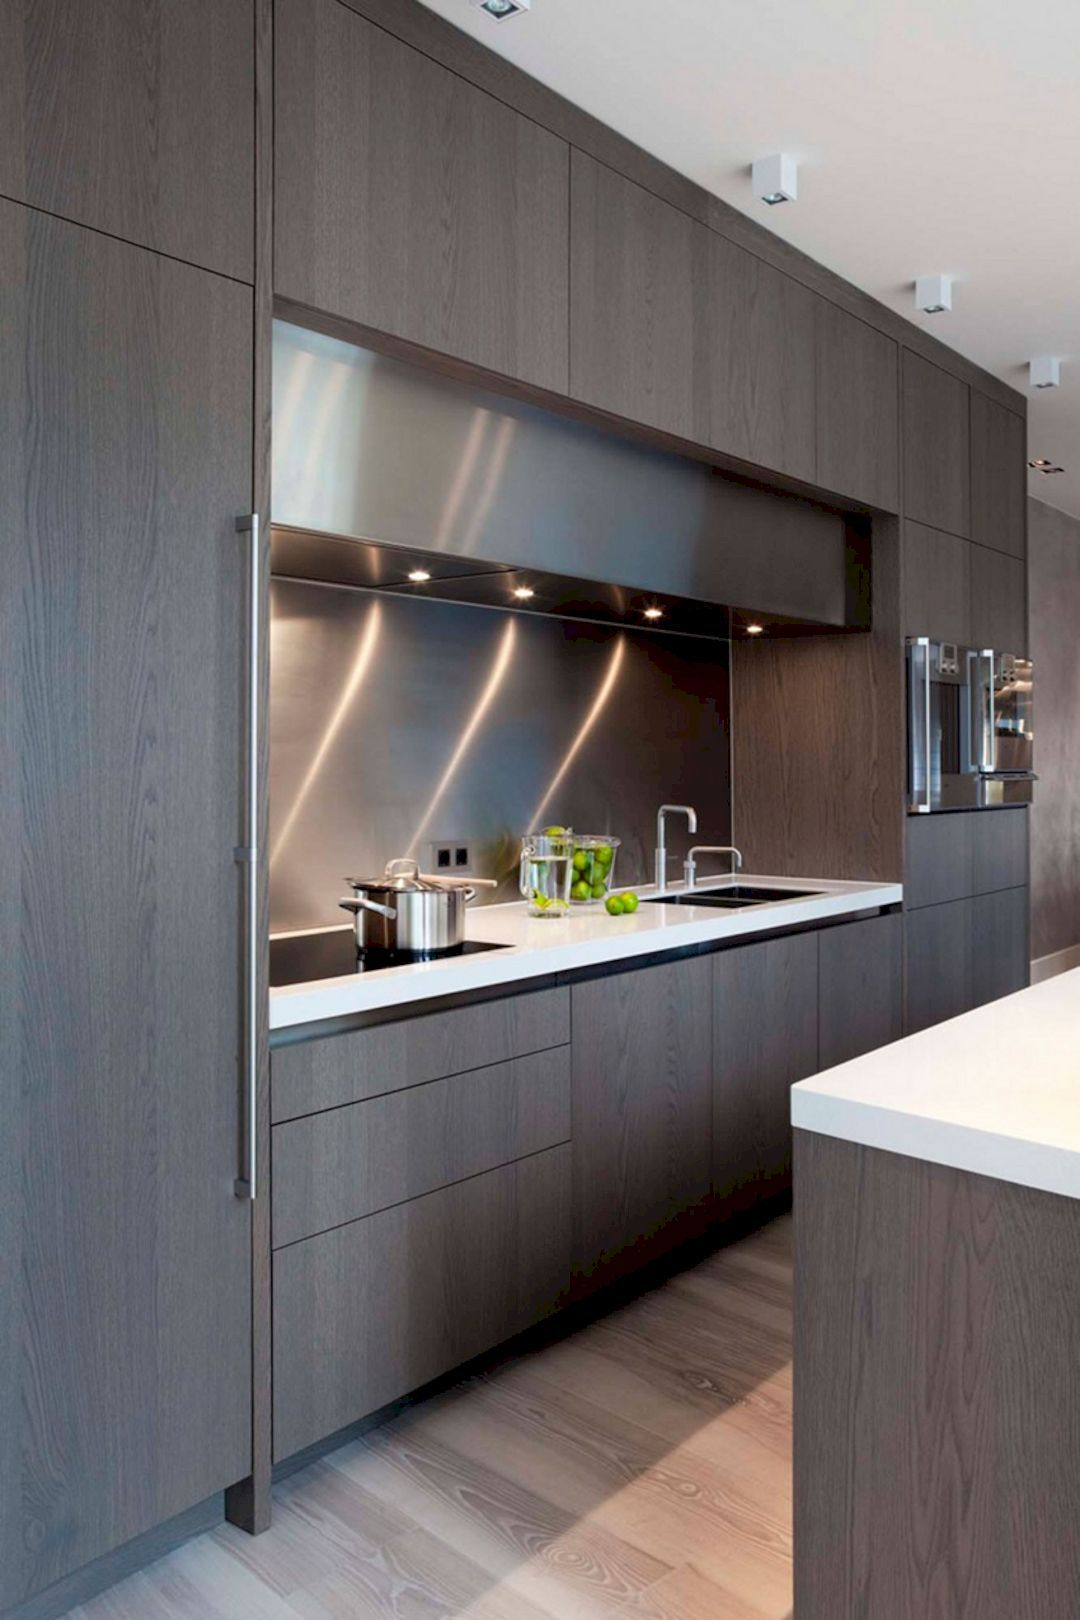 Stylish Modern Kitchen Cabinet: 127 Design Ideas ...